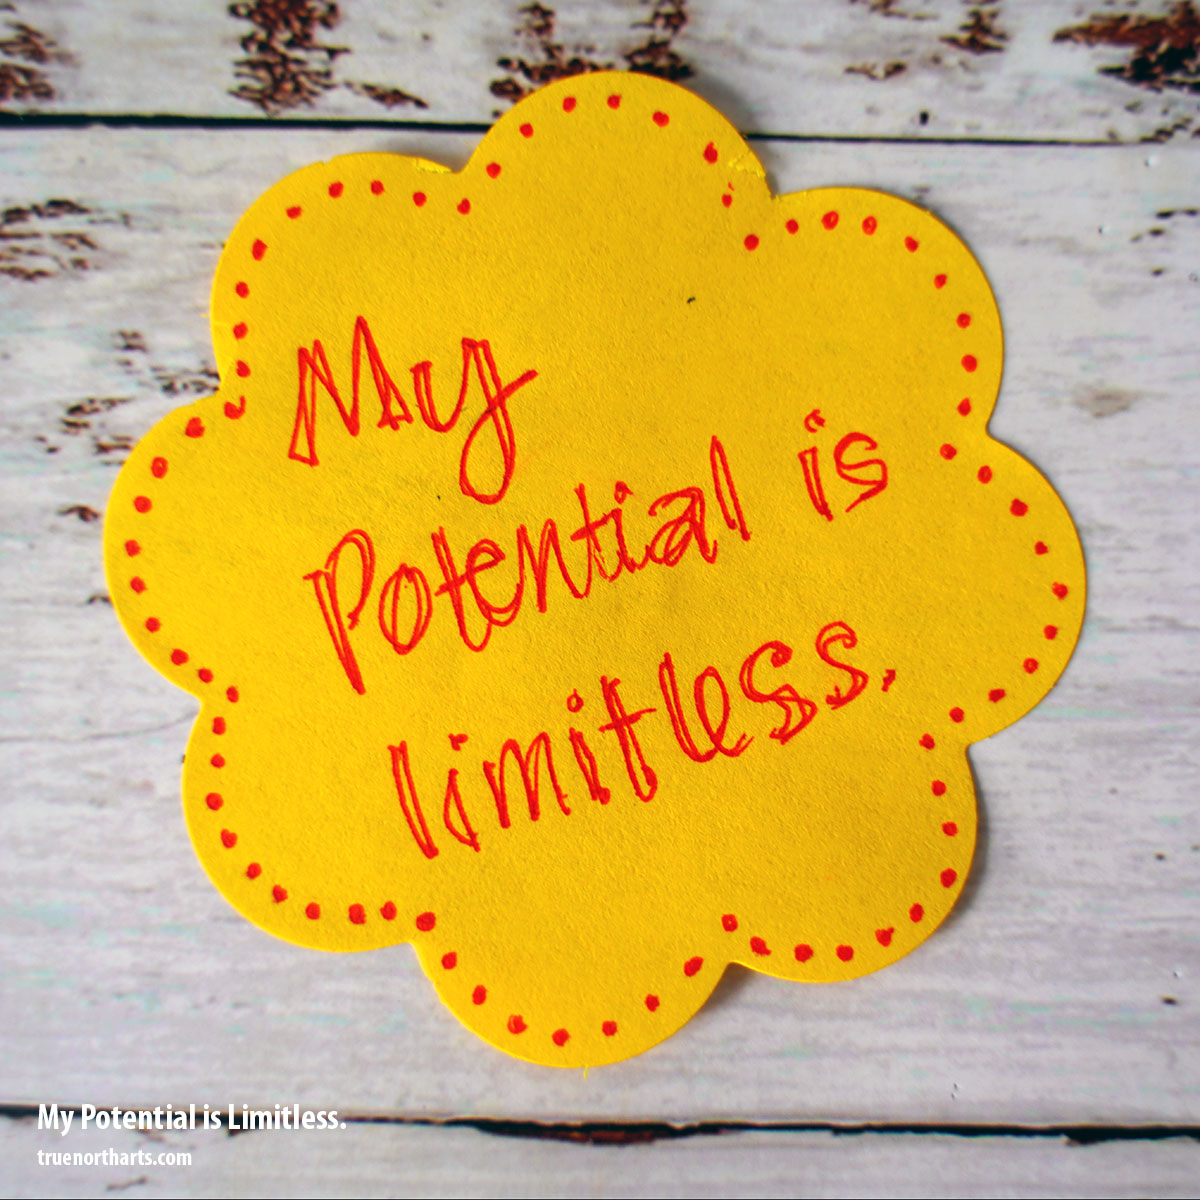 Affirmation - My Potential is Limitless